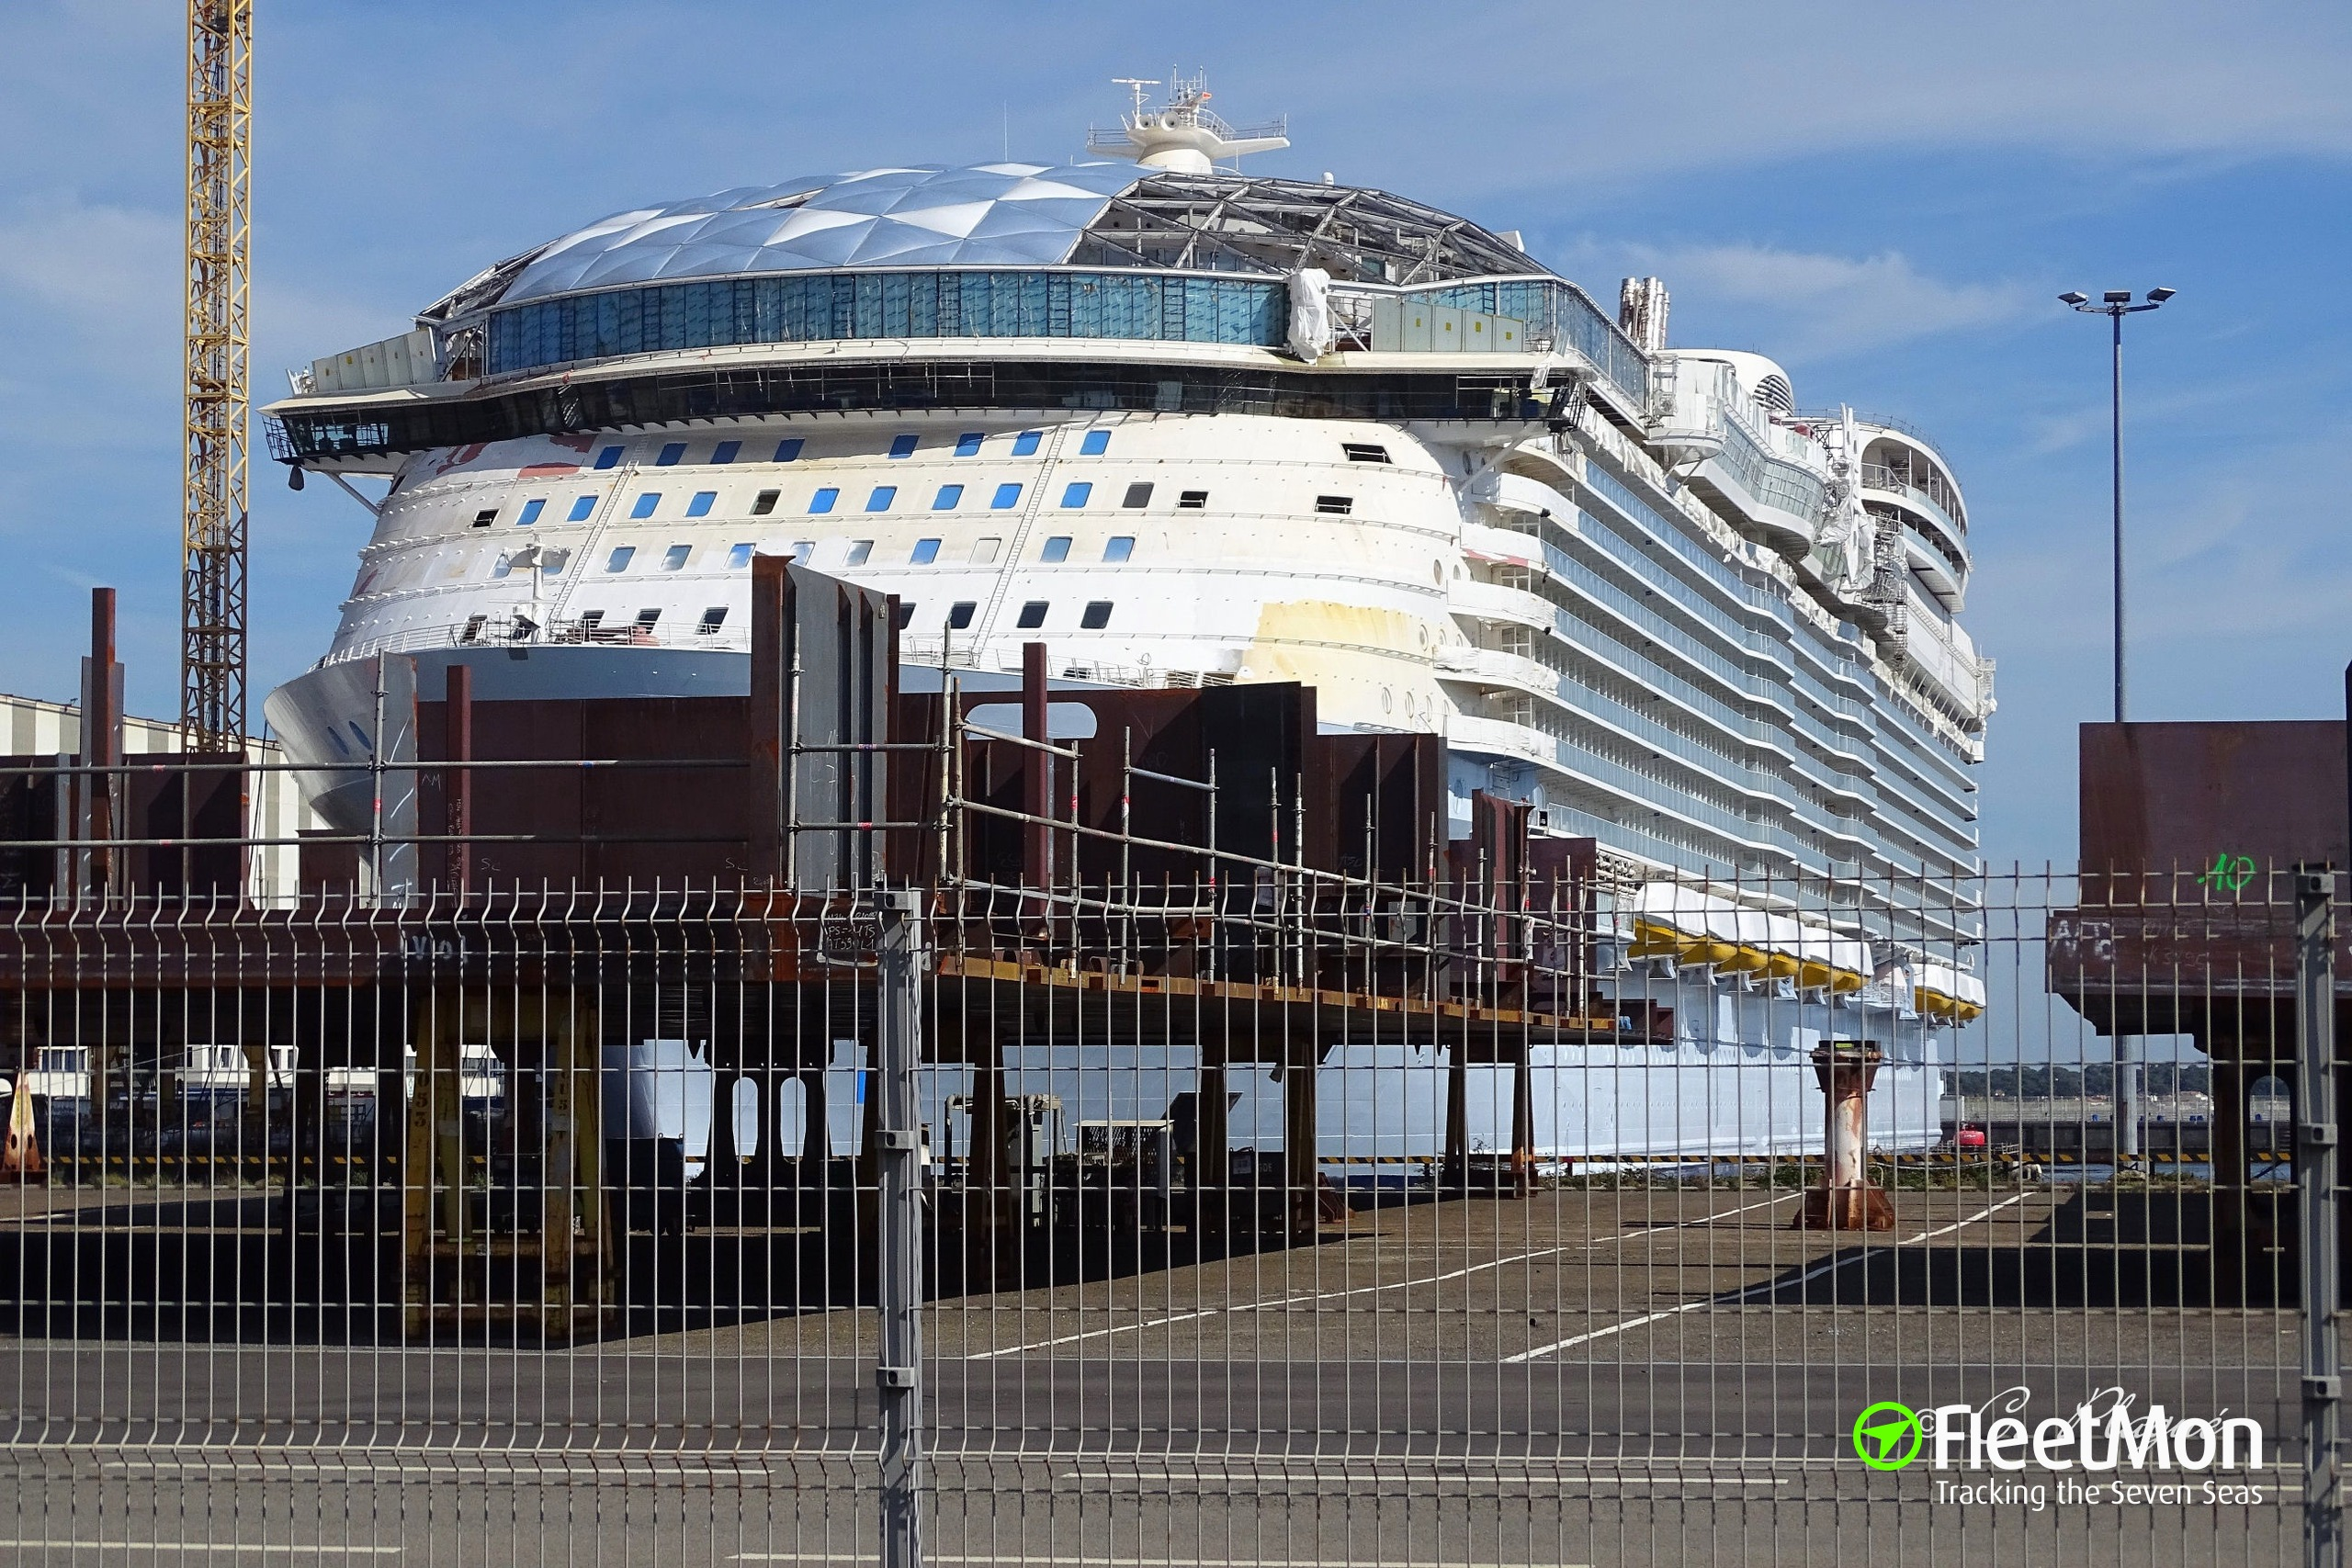 Photo Of Wonder Of The Seas Imo 9838345 Mmsi 227022600 Callsign Fnax Taken By Plague